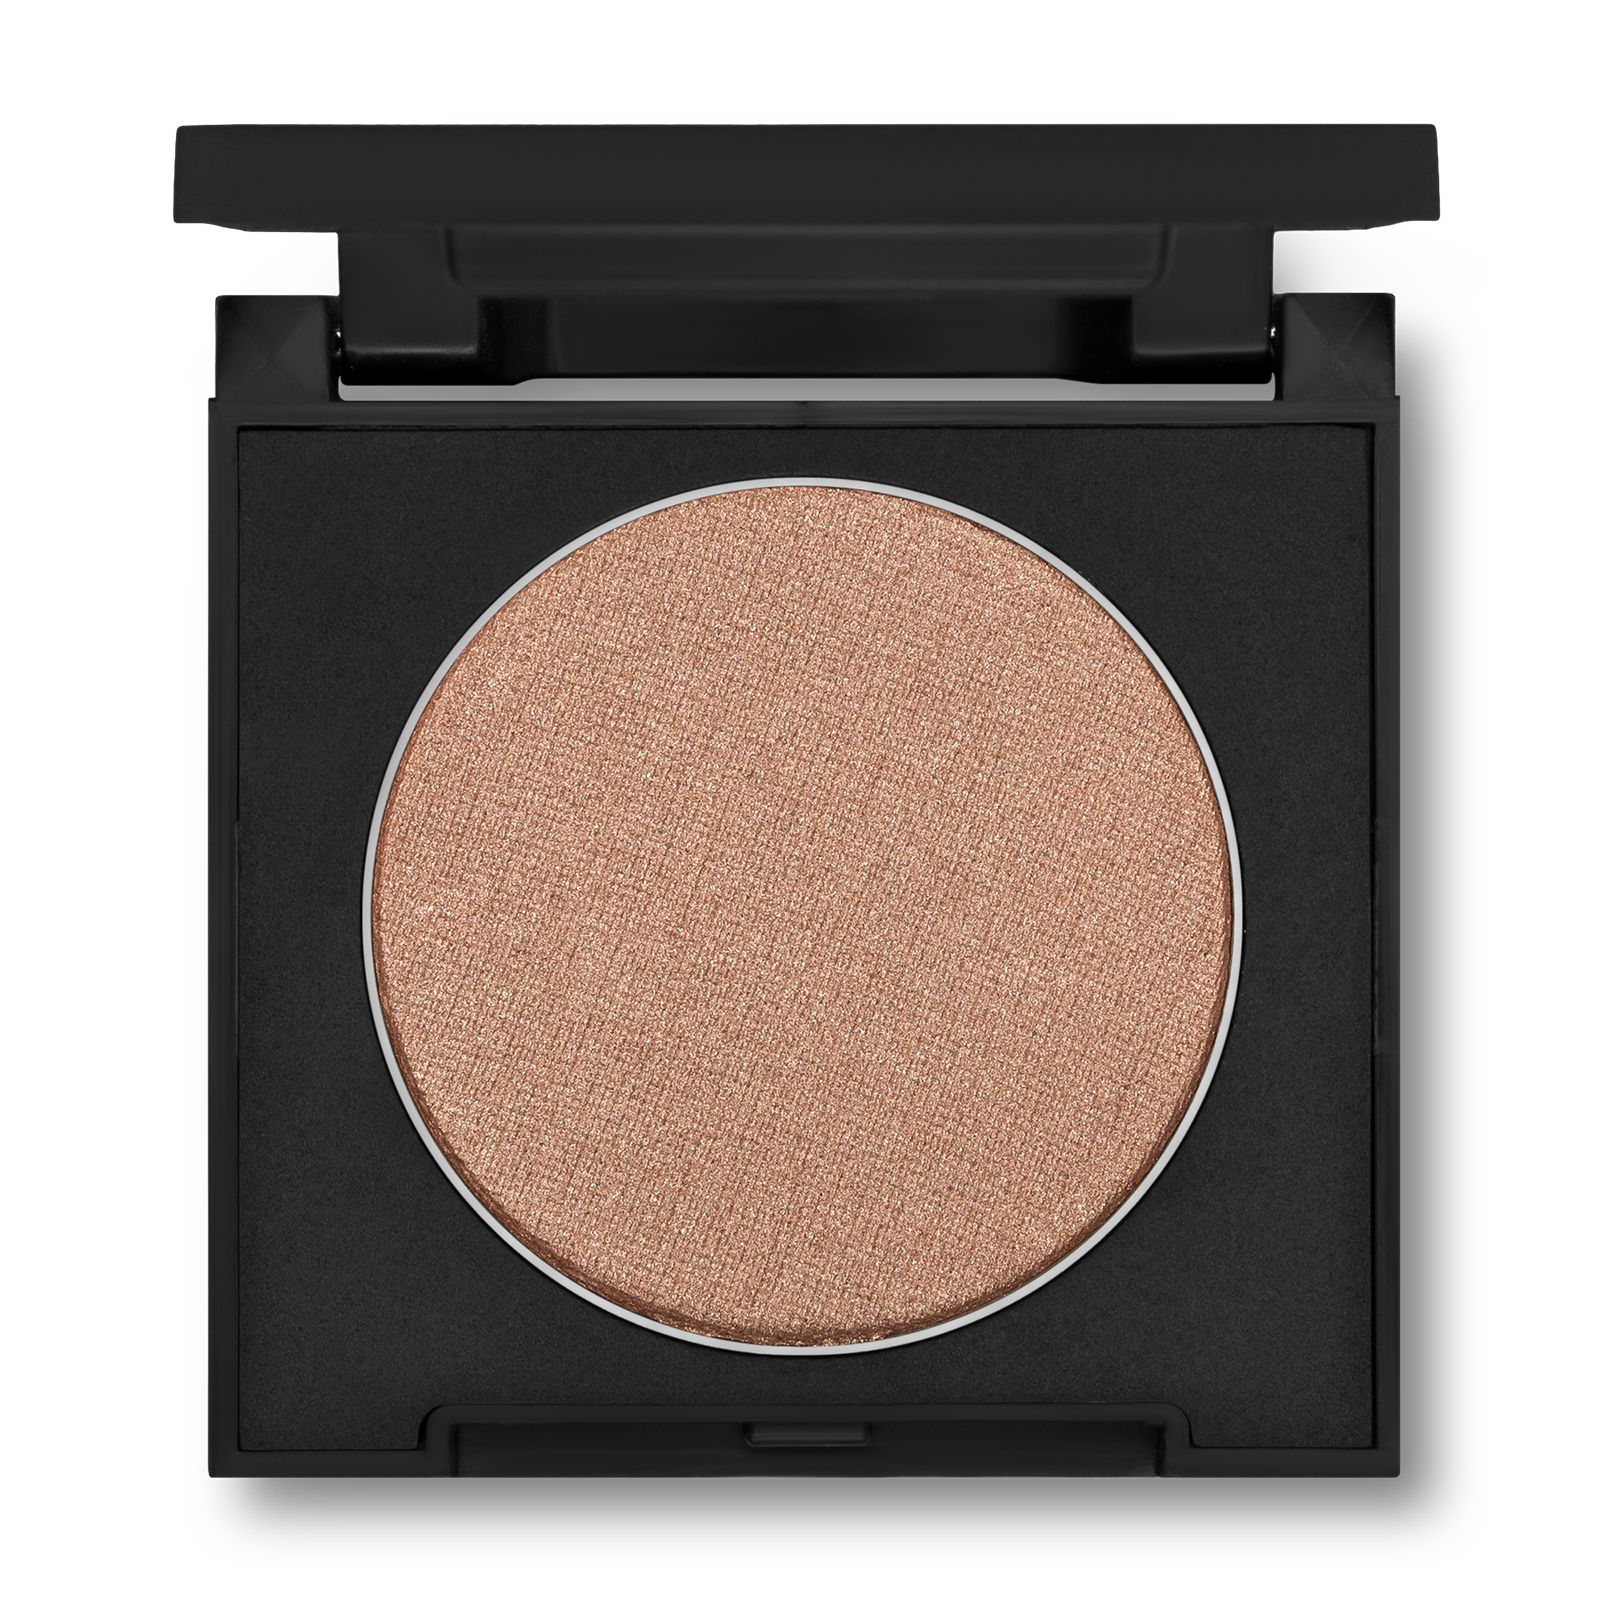 Eyeshadow product photography